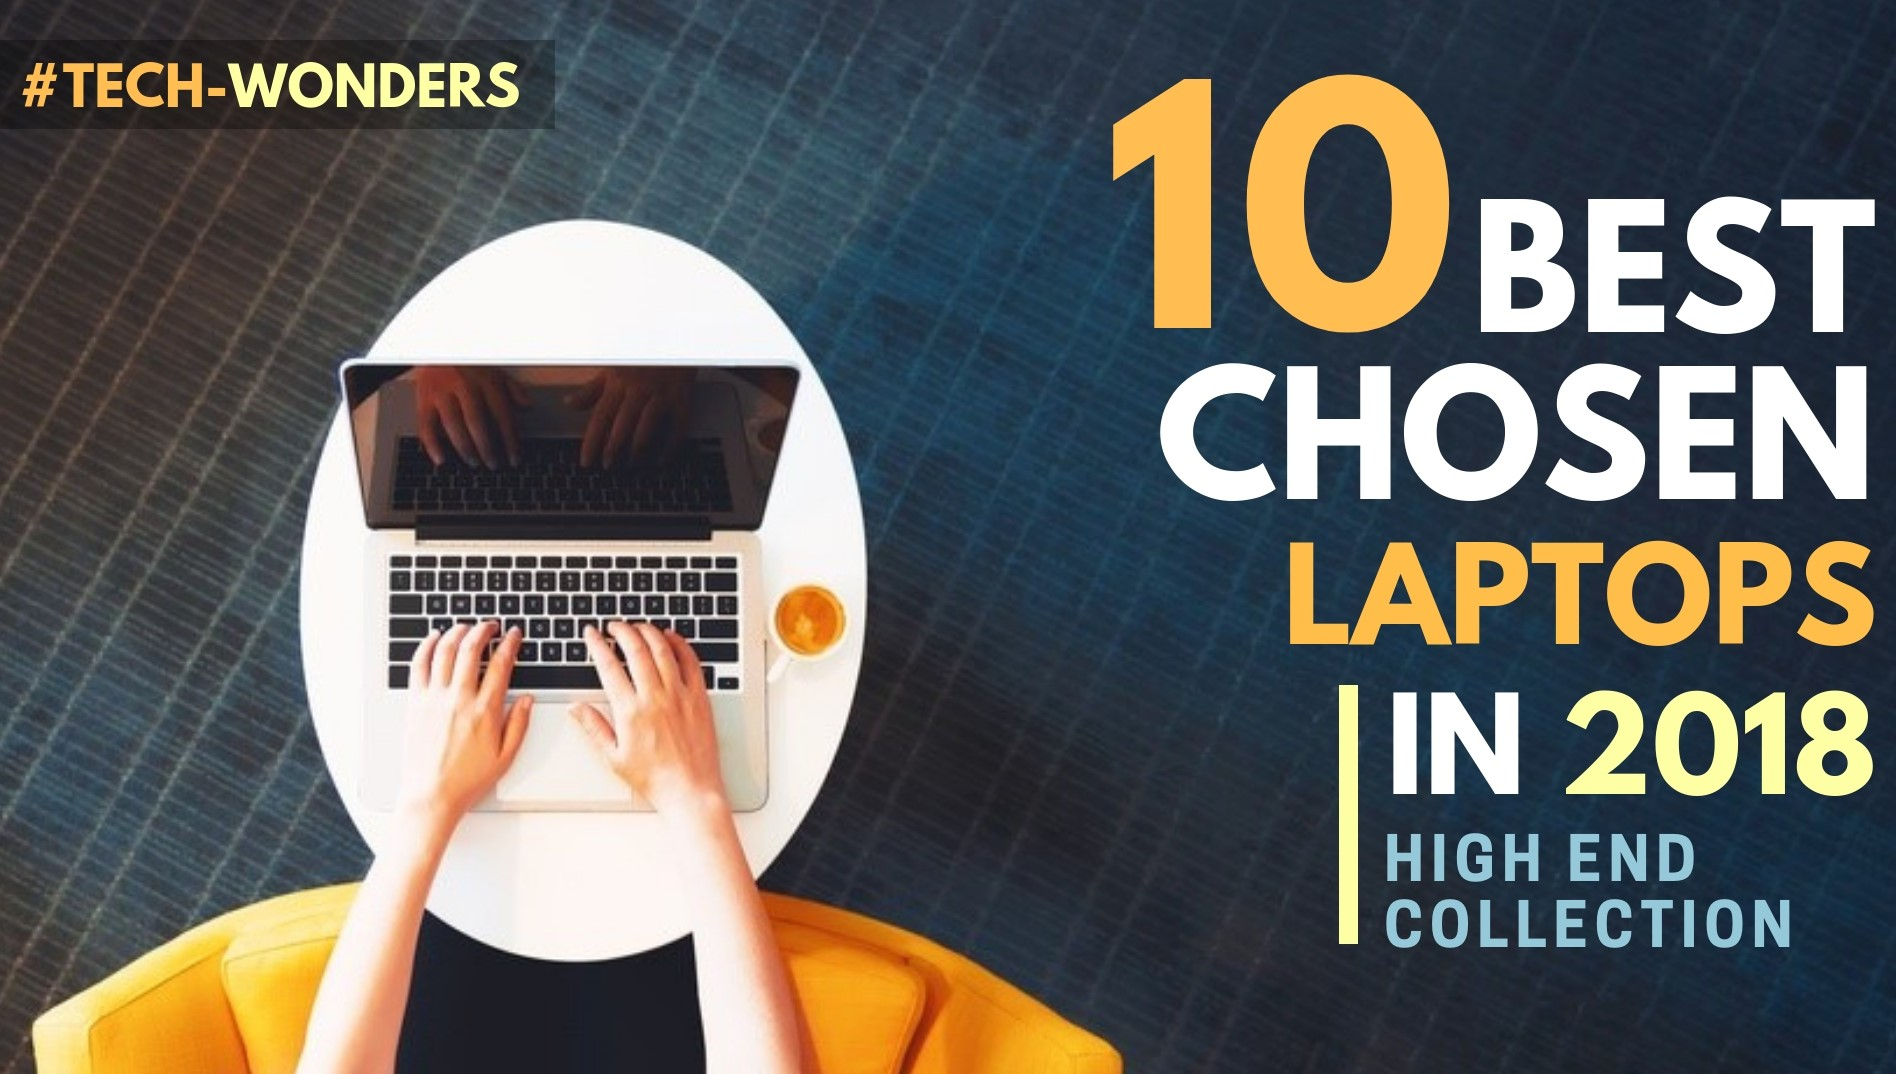 10 Best Chosen Laptops In 2018 High-End Collection